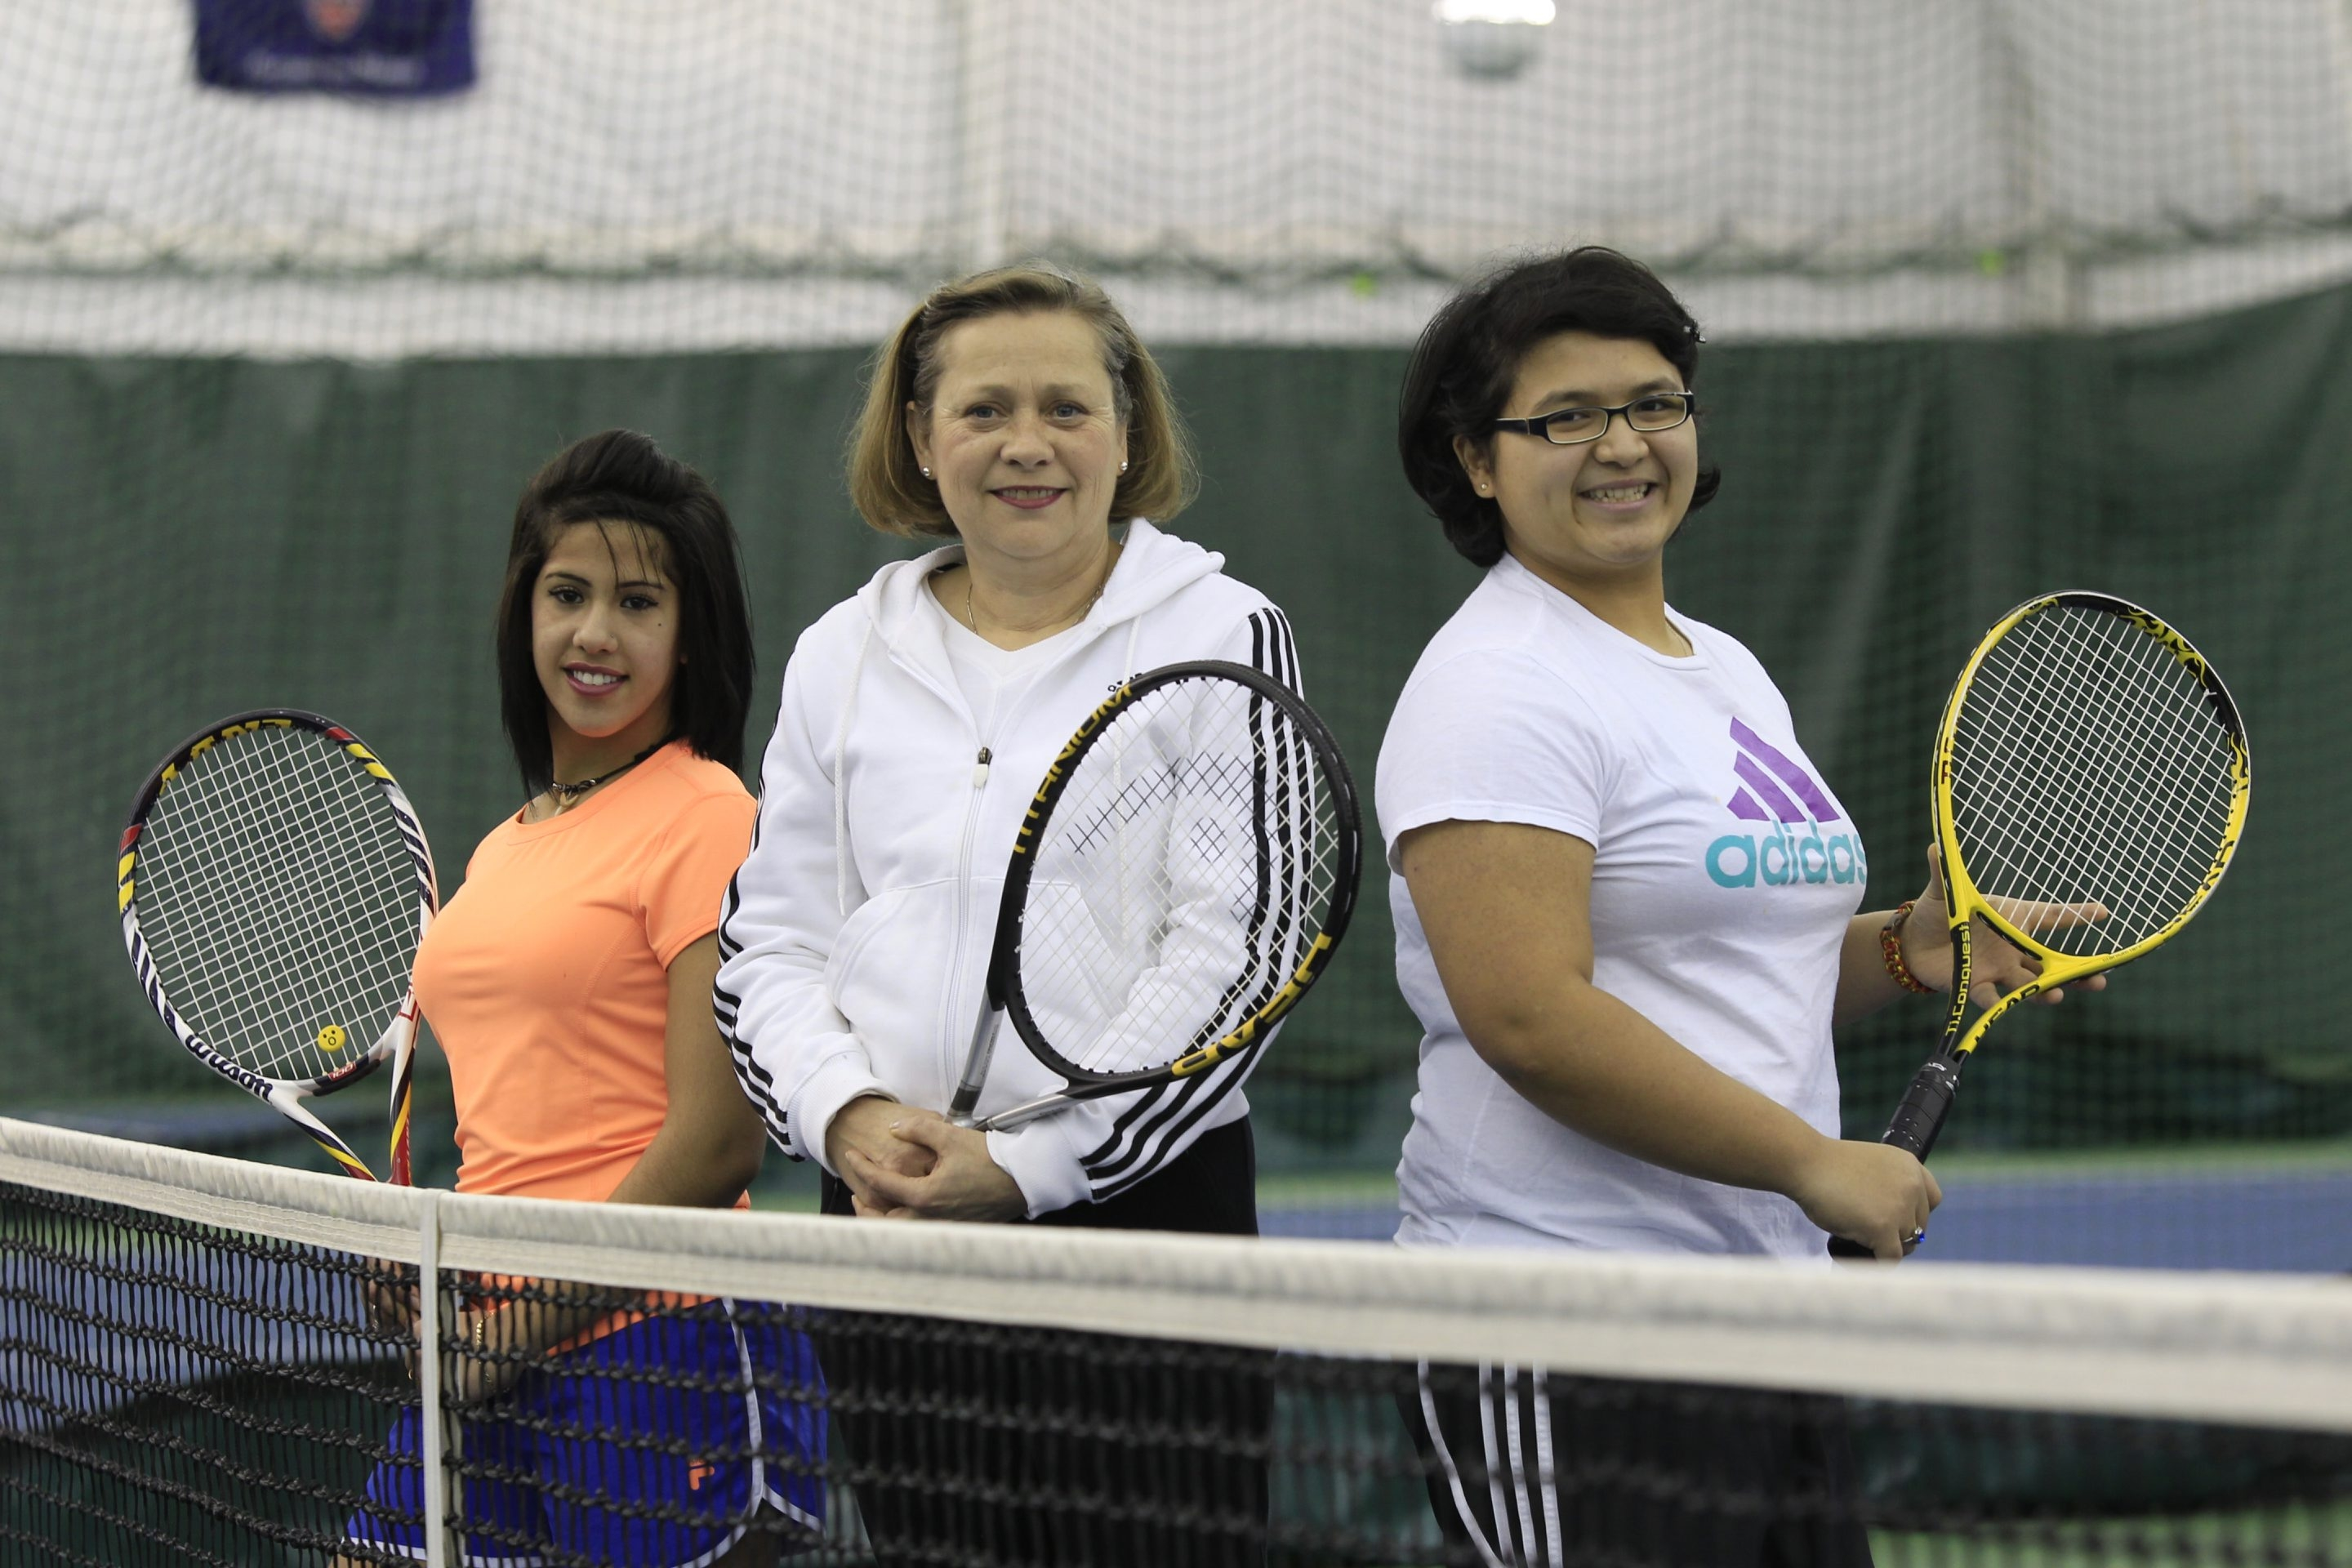 Marsha Huard, center, founder of the River Rock Tennis Association, has taught students Hanni That, left, of Mount St. Mary's and Manar Ali of Health Sciences Charter, among others.